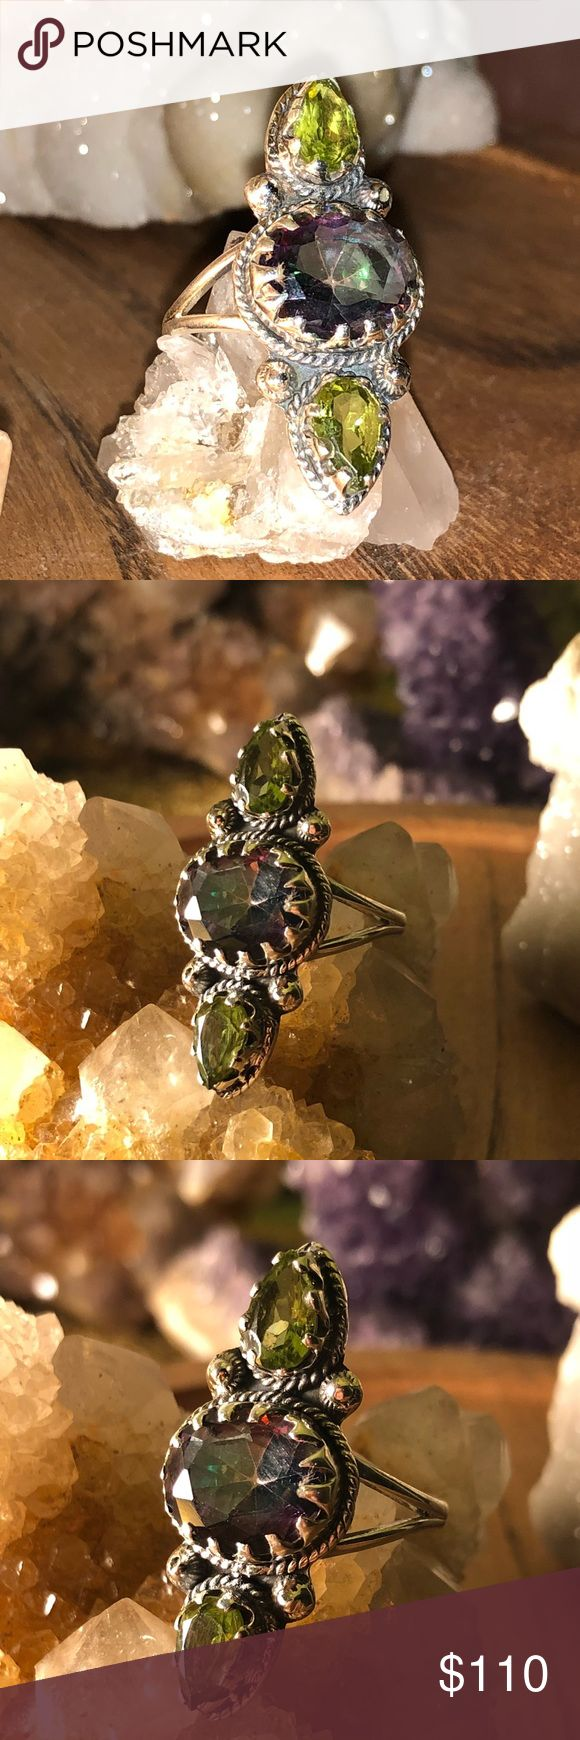 Rainbow Topaz & Peridot 925 sterling silver 6.5 🌙 Boho Rainbow Topaz & Peridot 925 sterling silver 6.5 🌙 this ring is absolutely stunning and a definite eye catcher, the rainbow topaz flashes many colors almost like an oil spill set in between two green peridots set 925 stamped sterling silver detailed setting size 6.5 Handcrafted one of a kind ring that will add to any outfit . Jewelry Rings